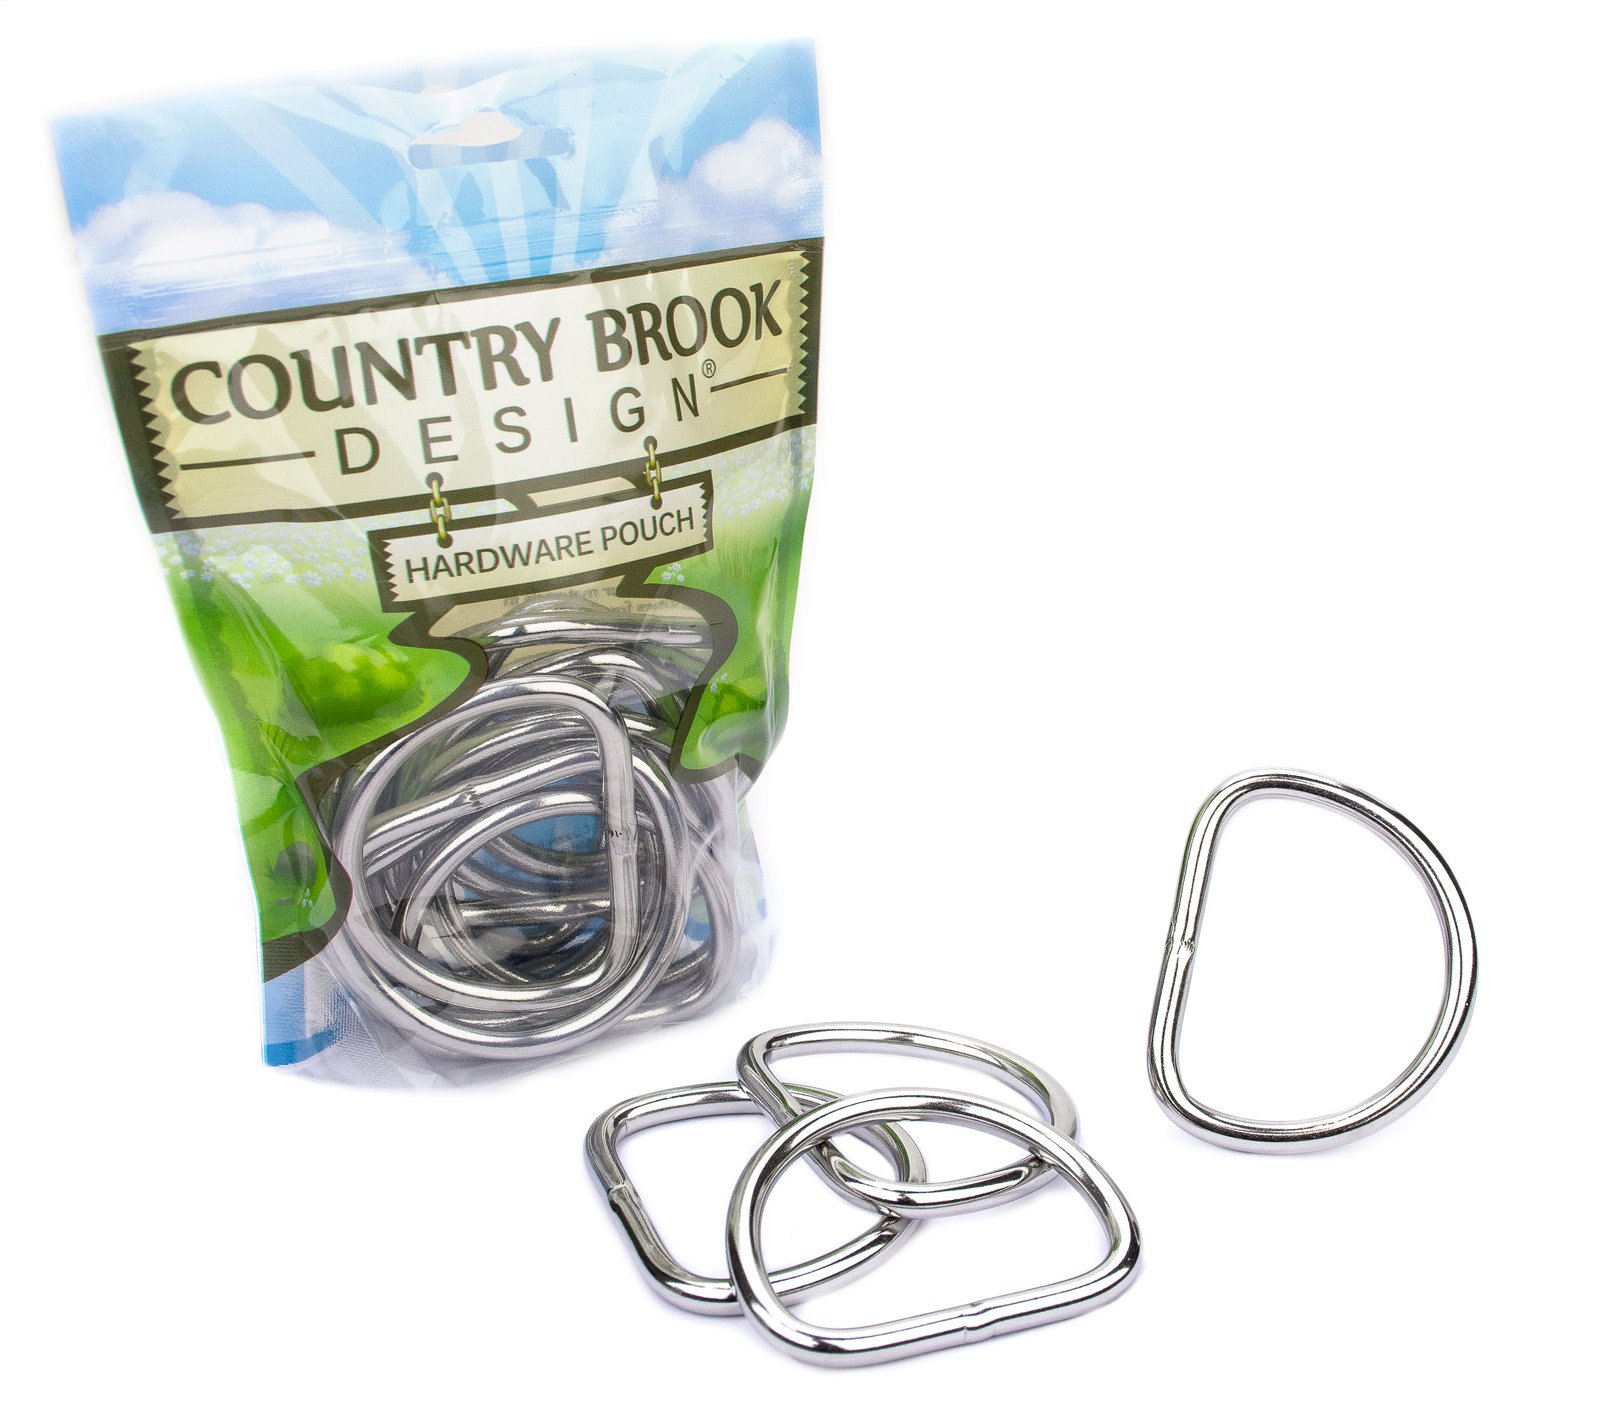 25 - Country Brook Design - 2 Inch Stainless Steel Welded D-Rings by Country Brook Design